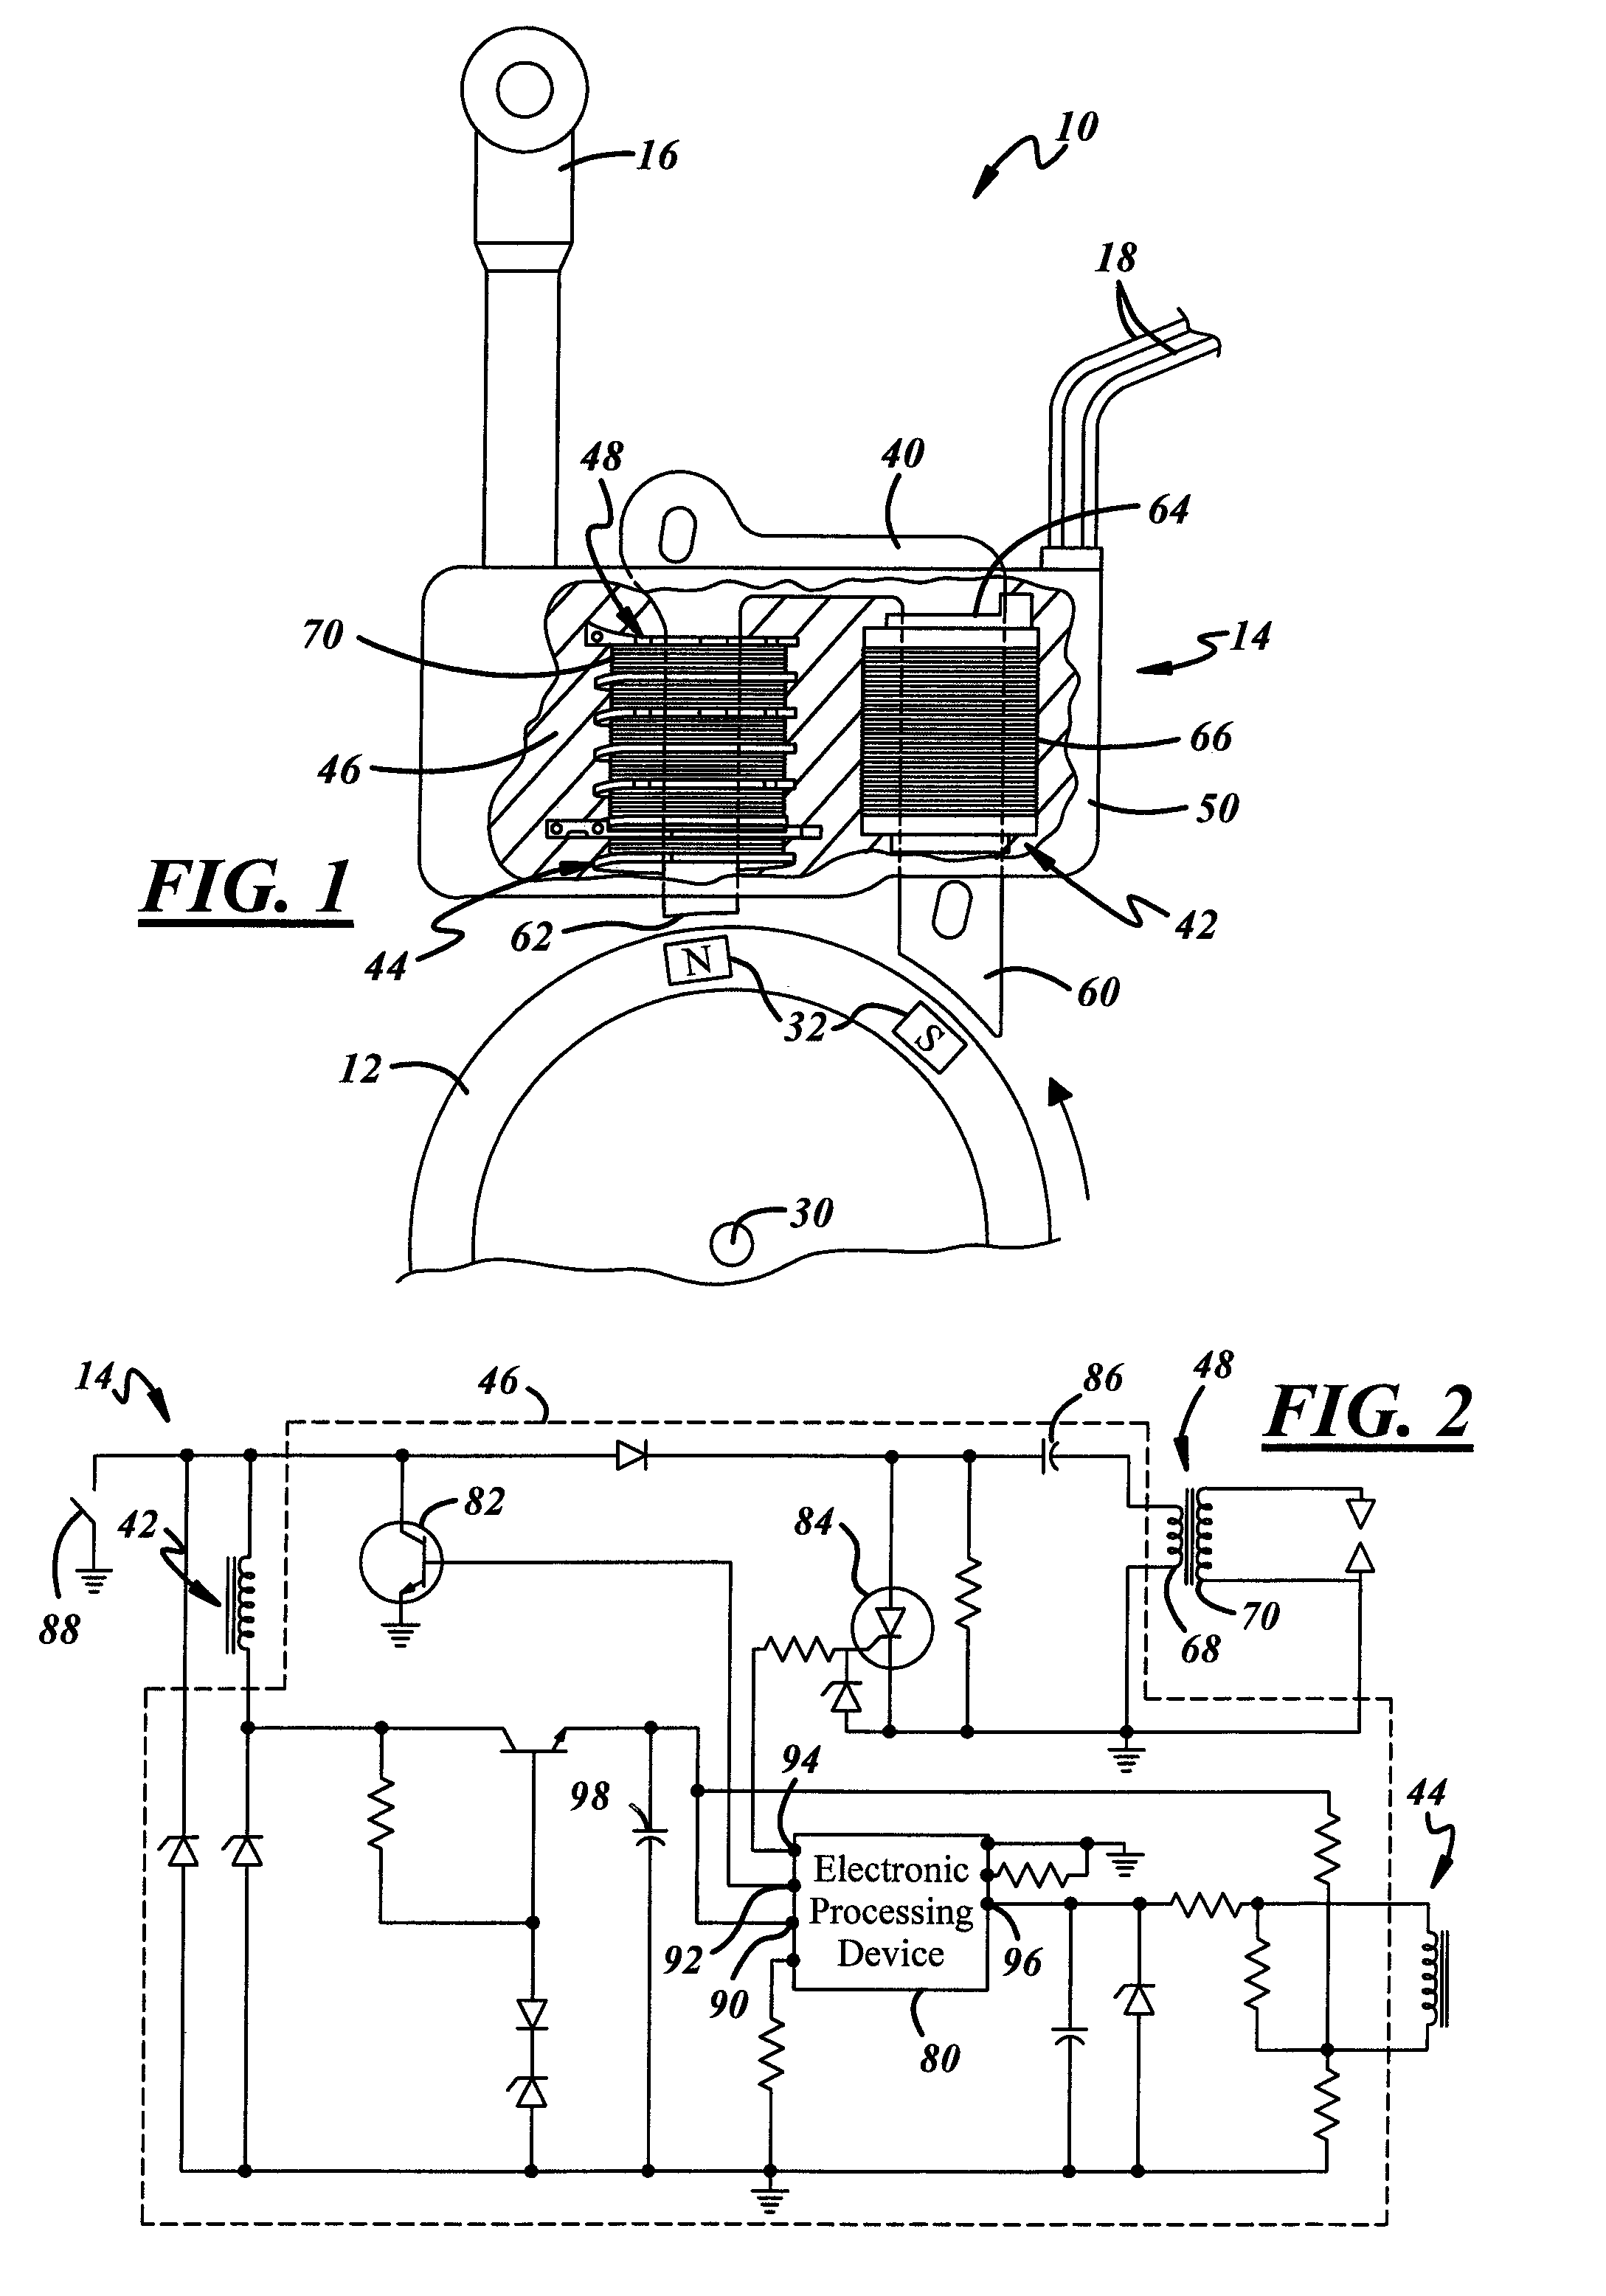 patent us7546836 - ignition module for use with a light-duty internal combustion engine